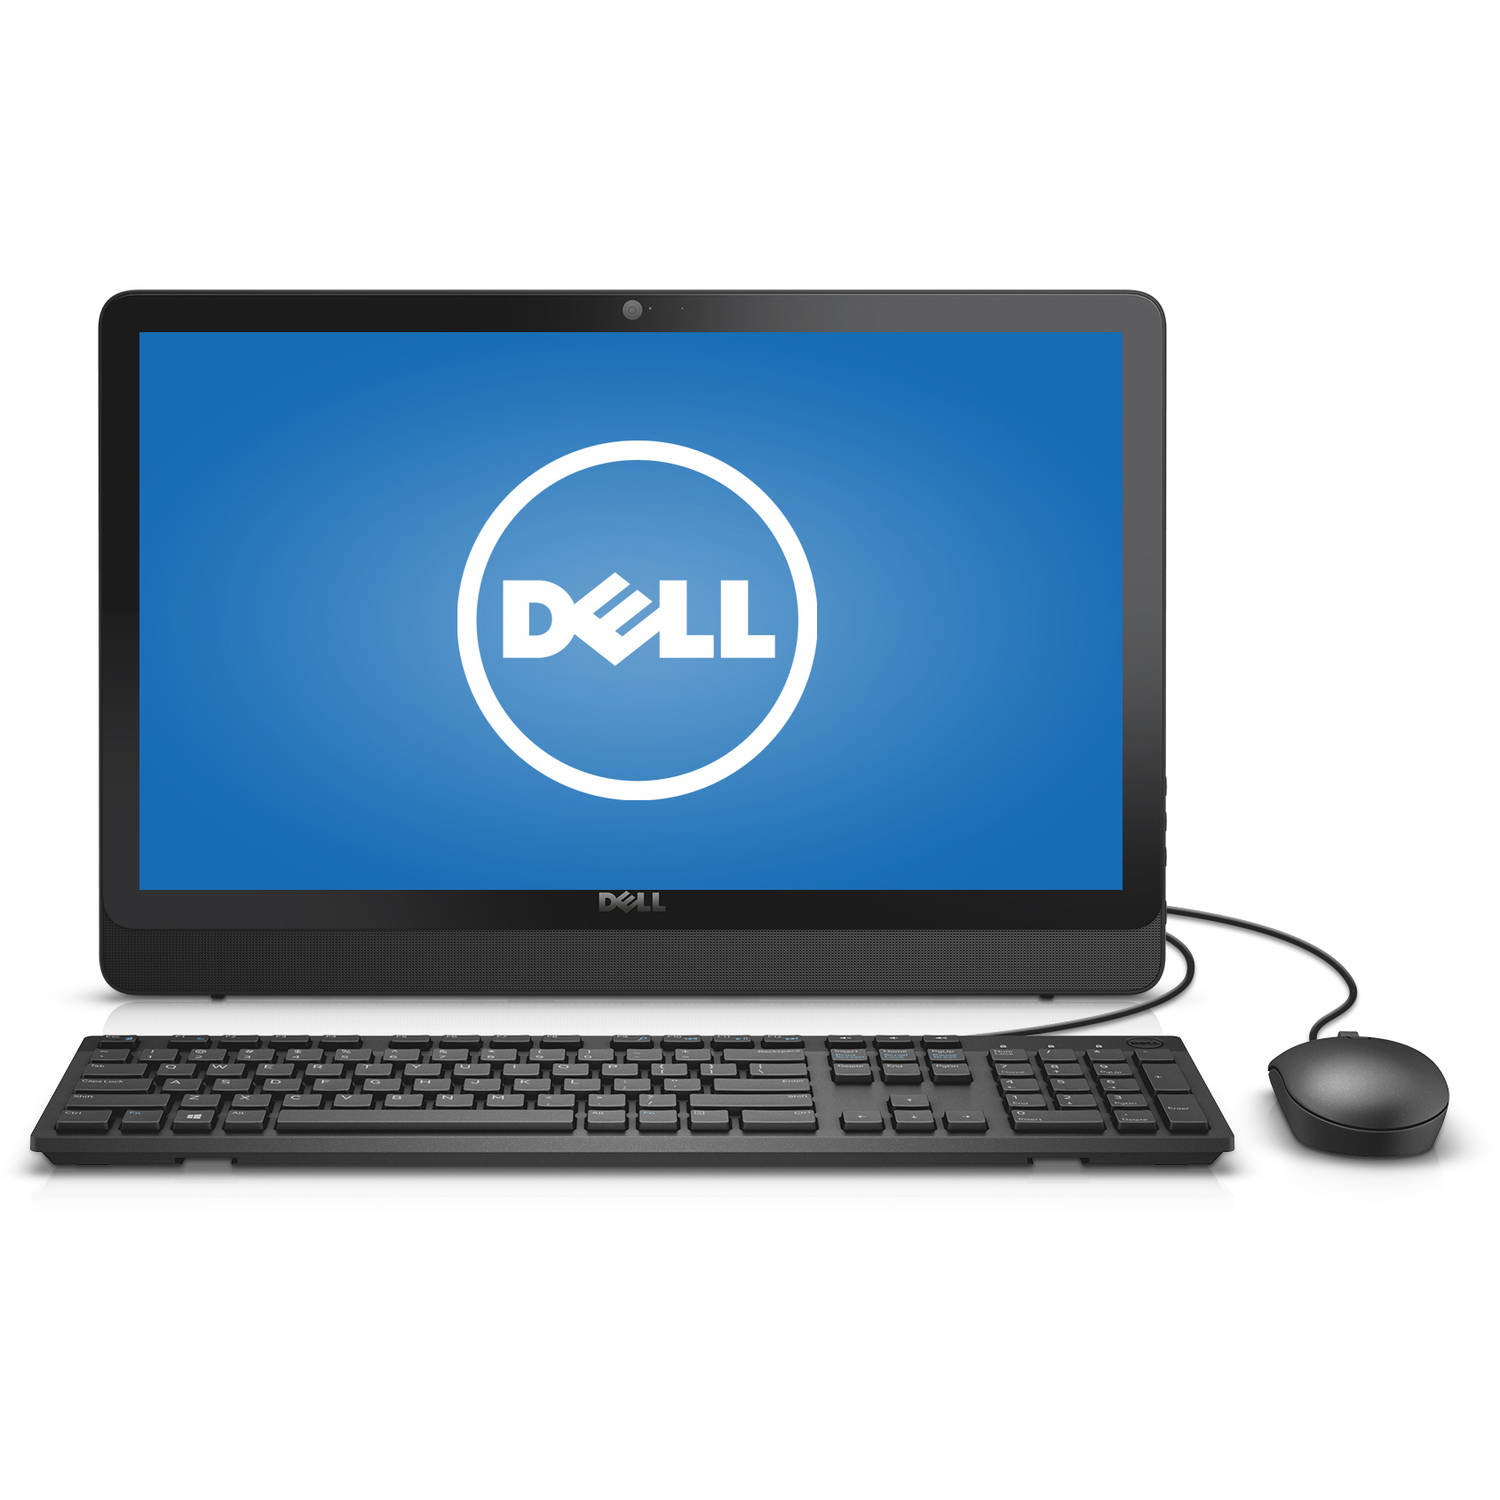 "Dell Black Bezel Inspiron 3052 All-In-One Desktop PC with Intel Celeron N3150, 4GB Memory, 19.5"" Monitor, 500GB Hard Drive and Windows 10 Home"